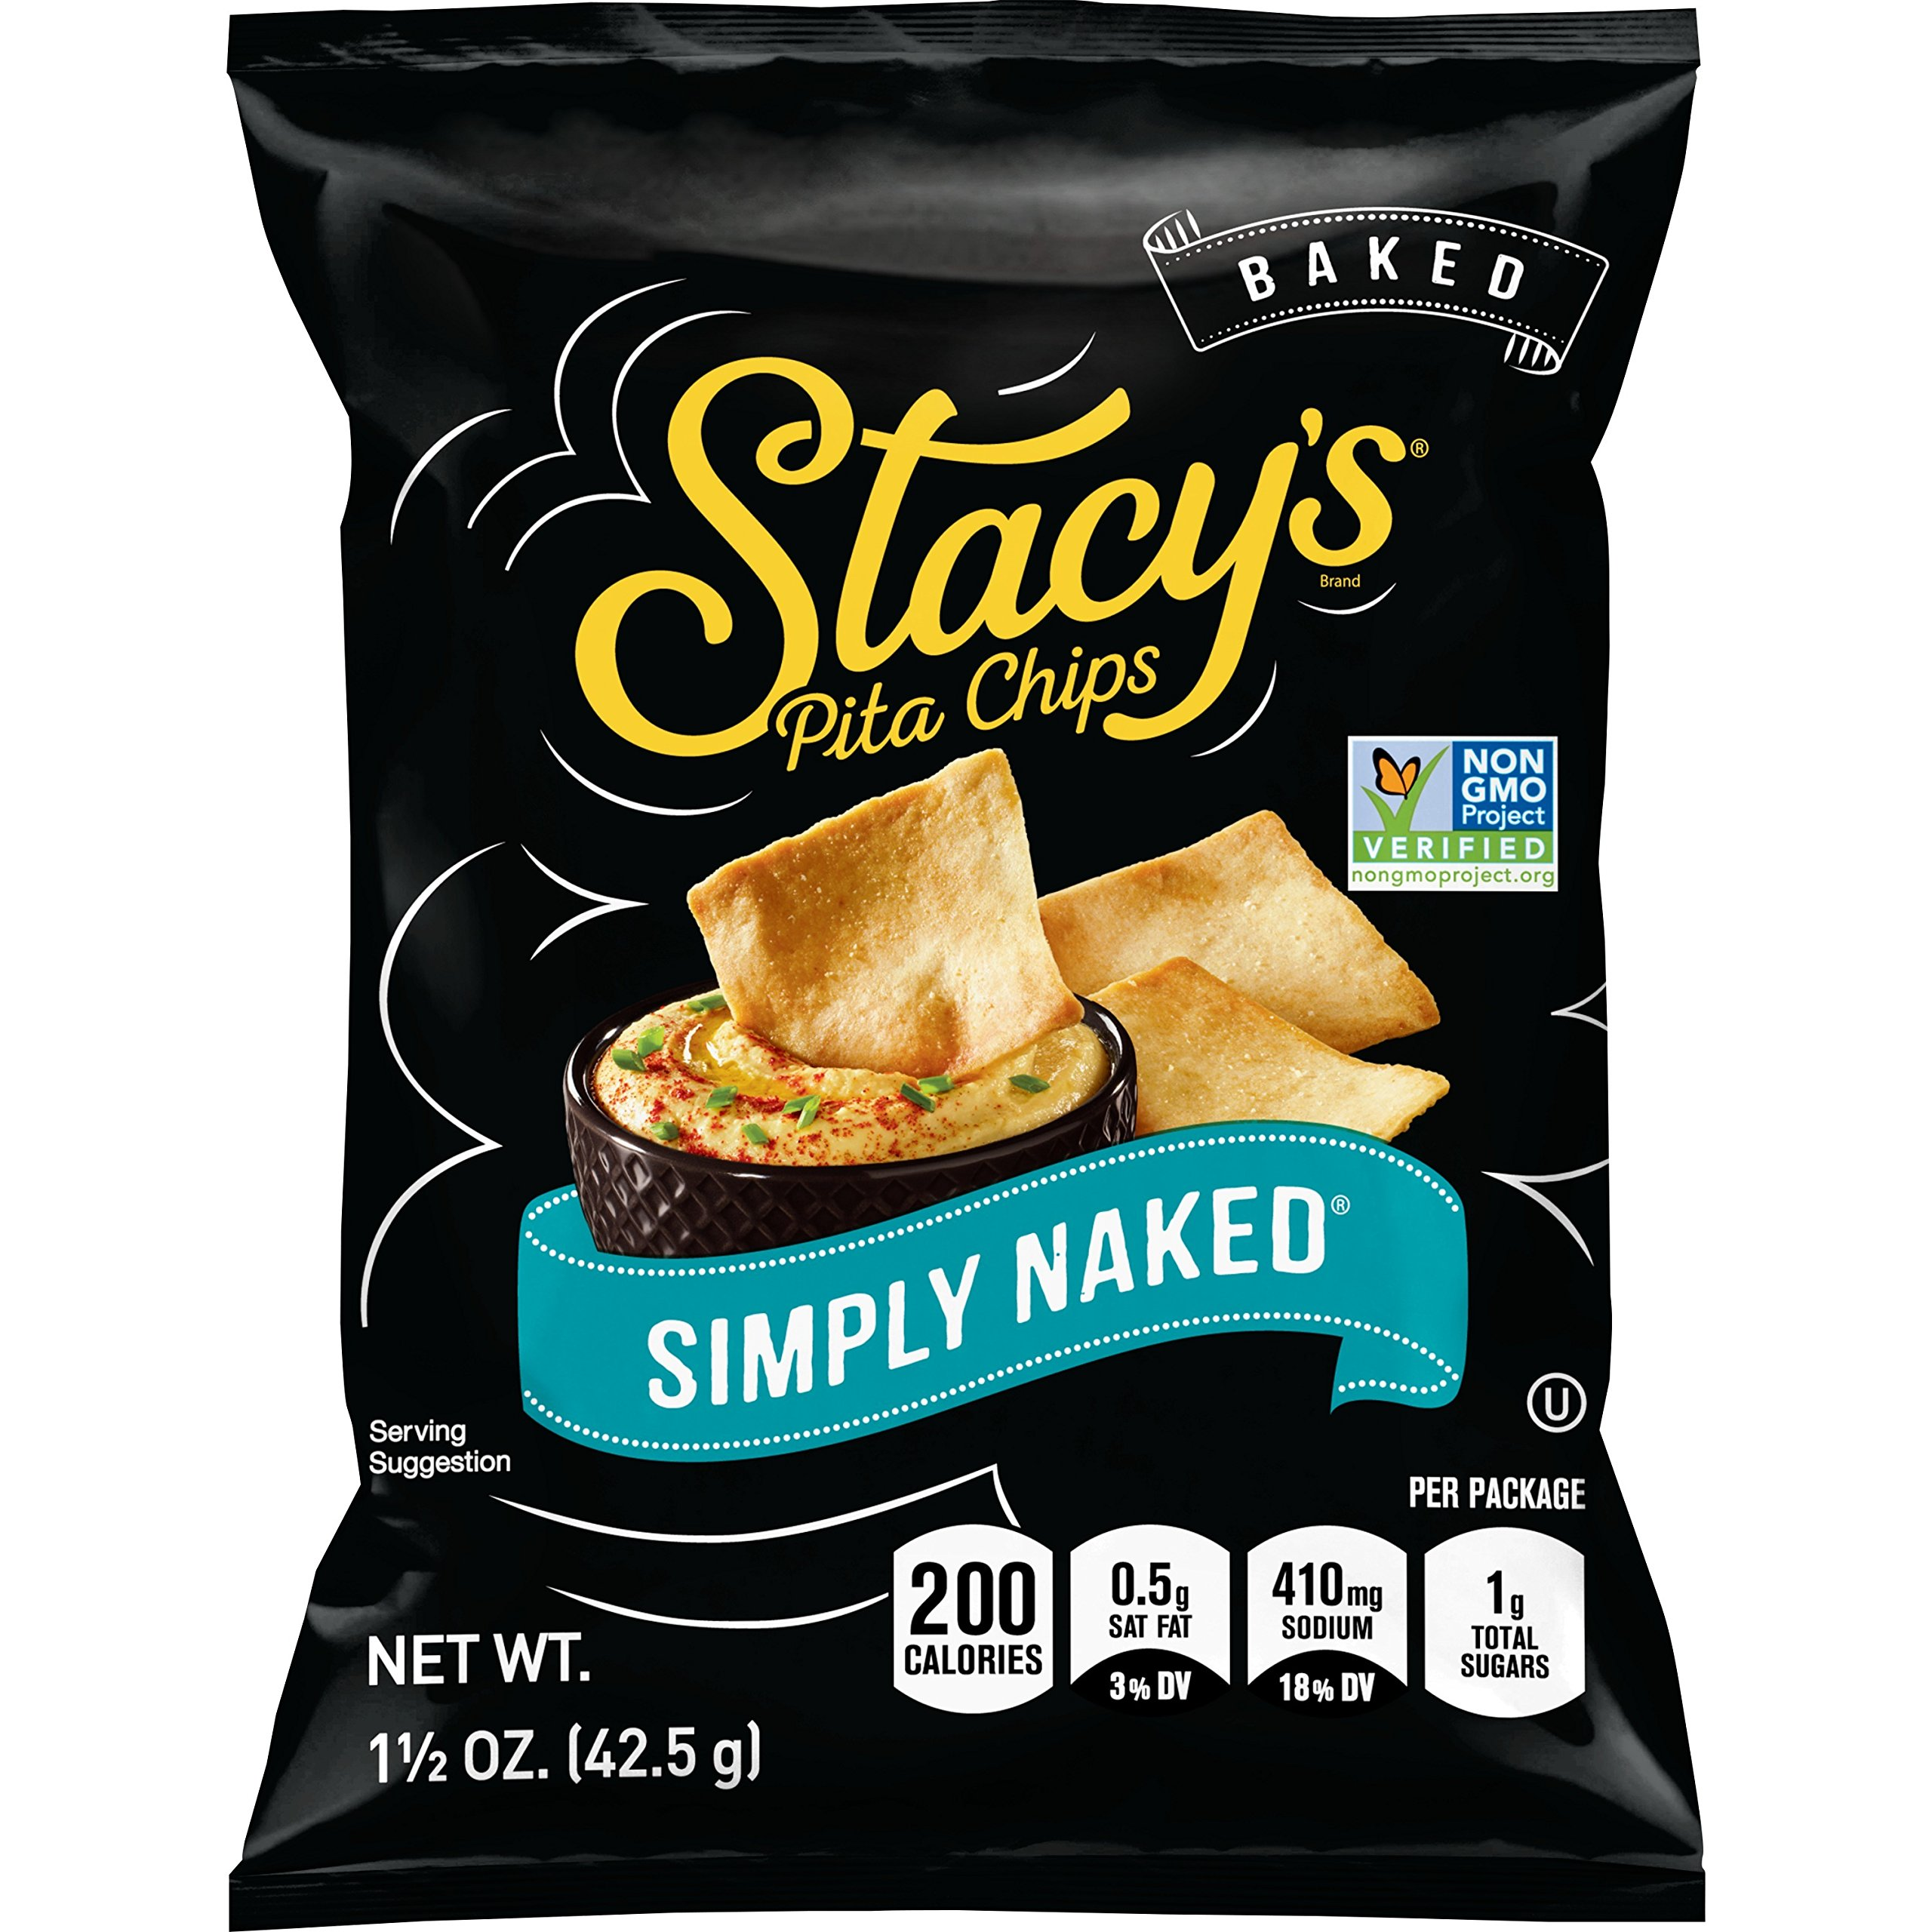 Stacy's Simply Naked Pita Chips, 1.5 Ounce Bags (Pack of 24)